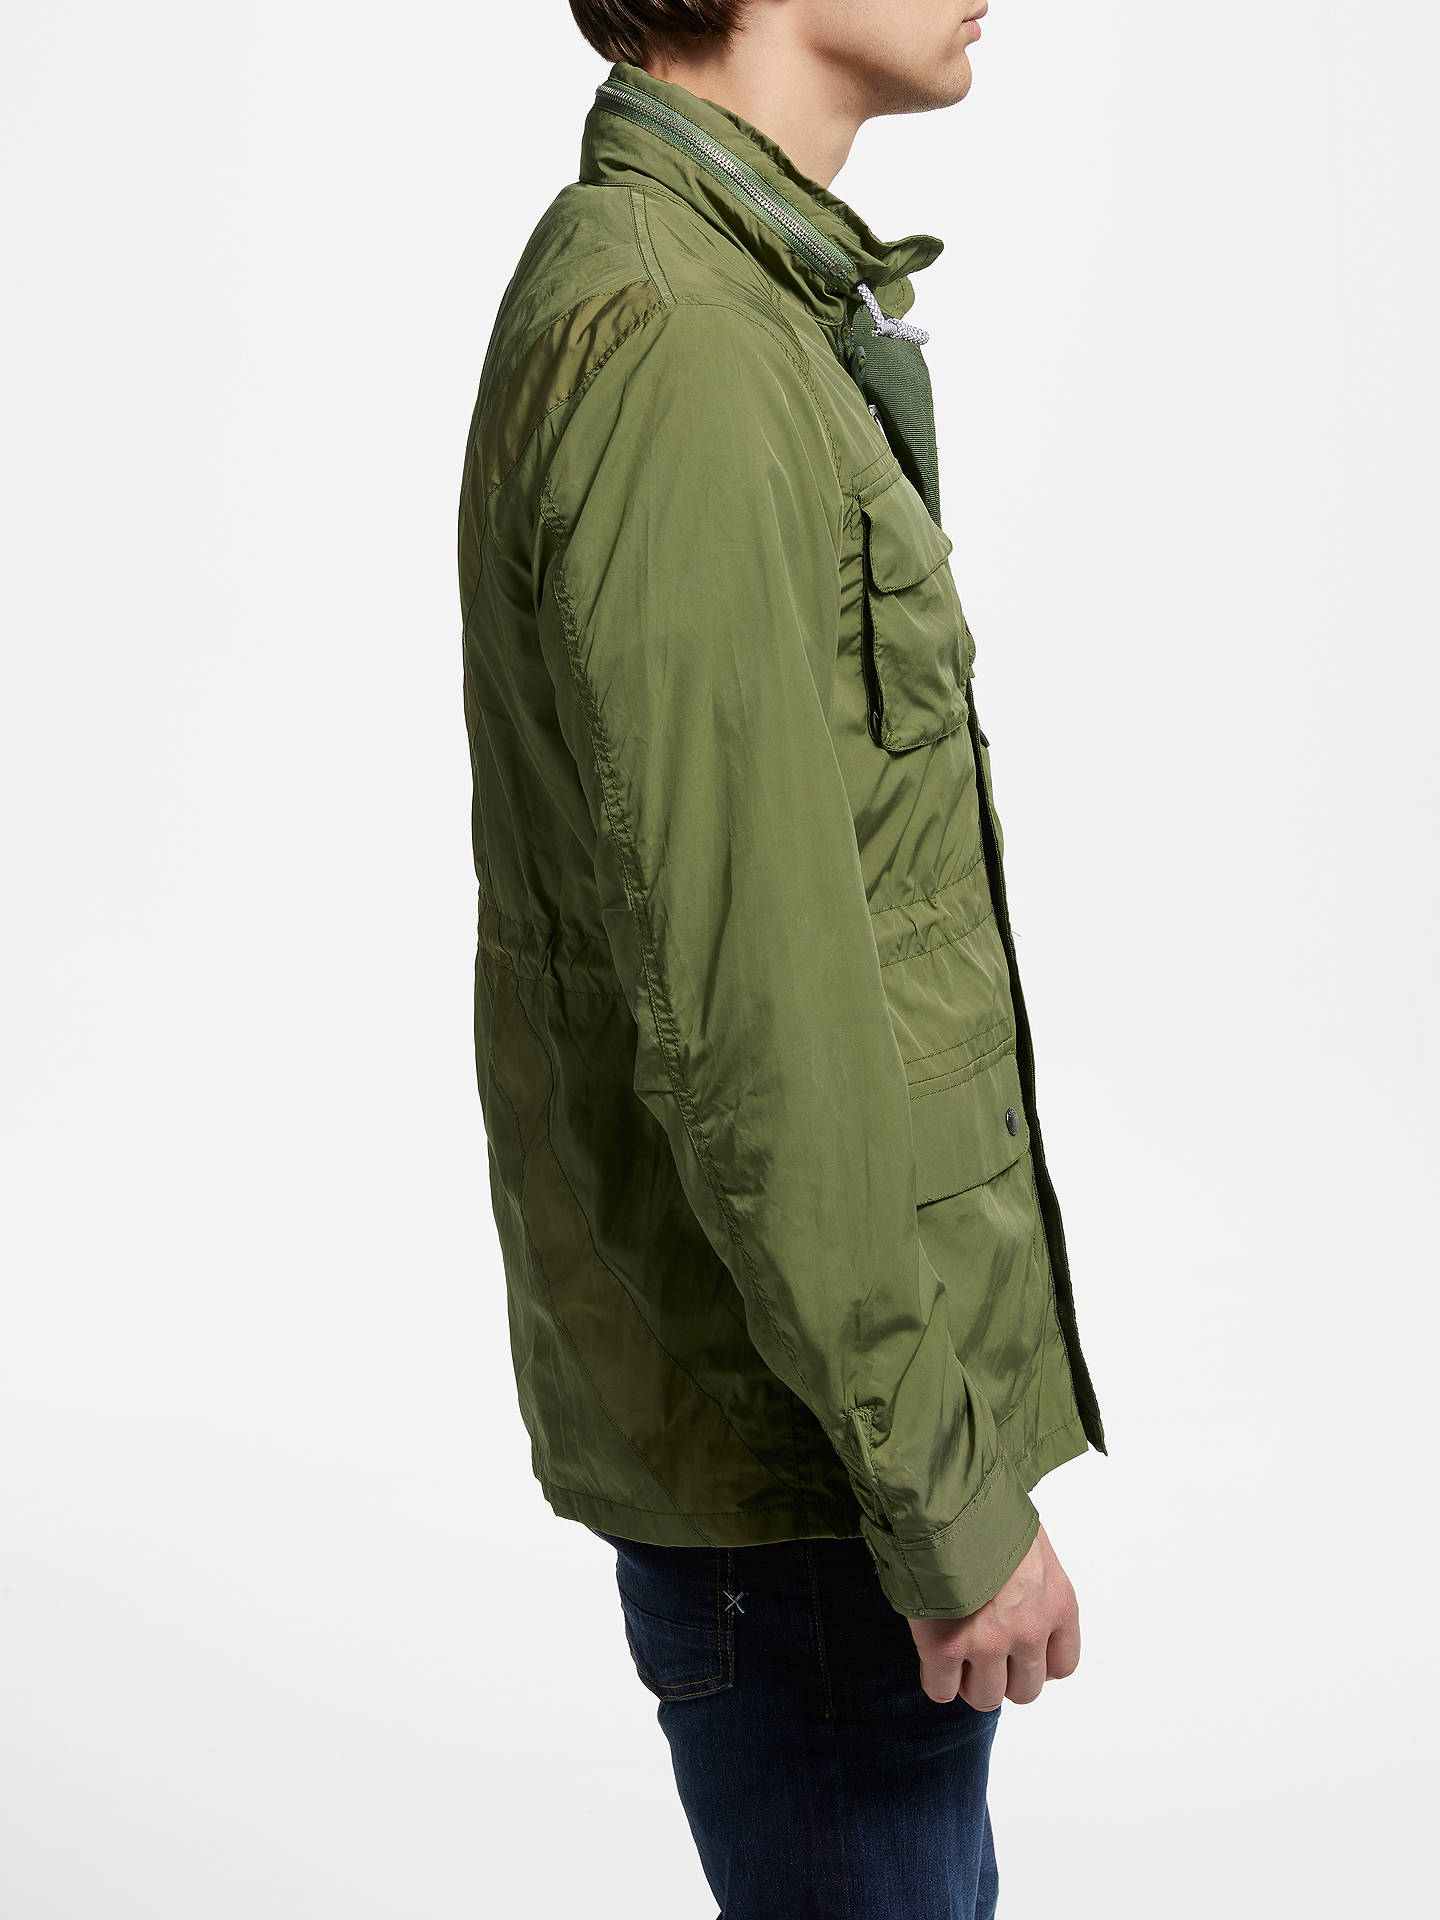 Buy Scotch & Soda Military Jacket, Green, M Online at johnlewis.com